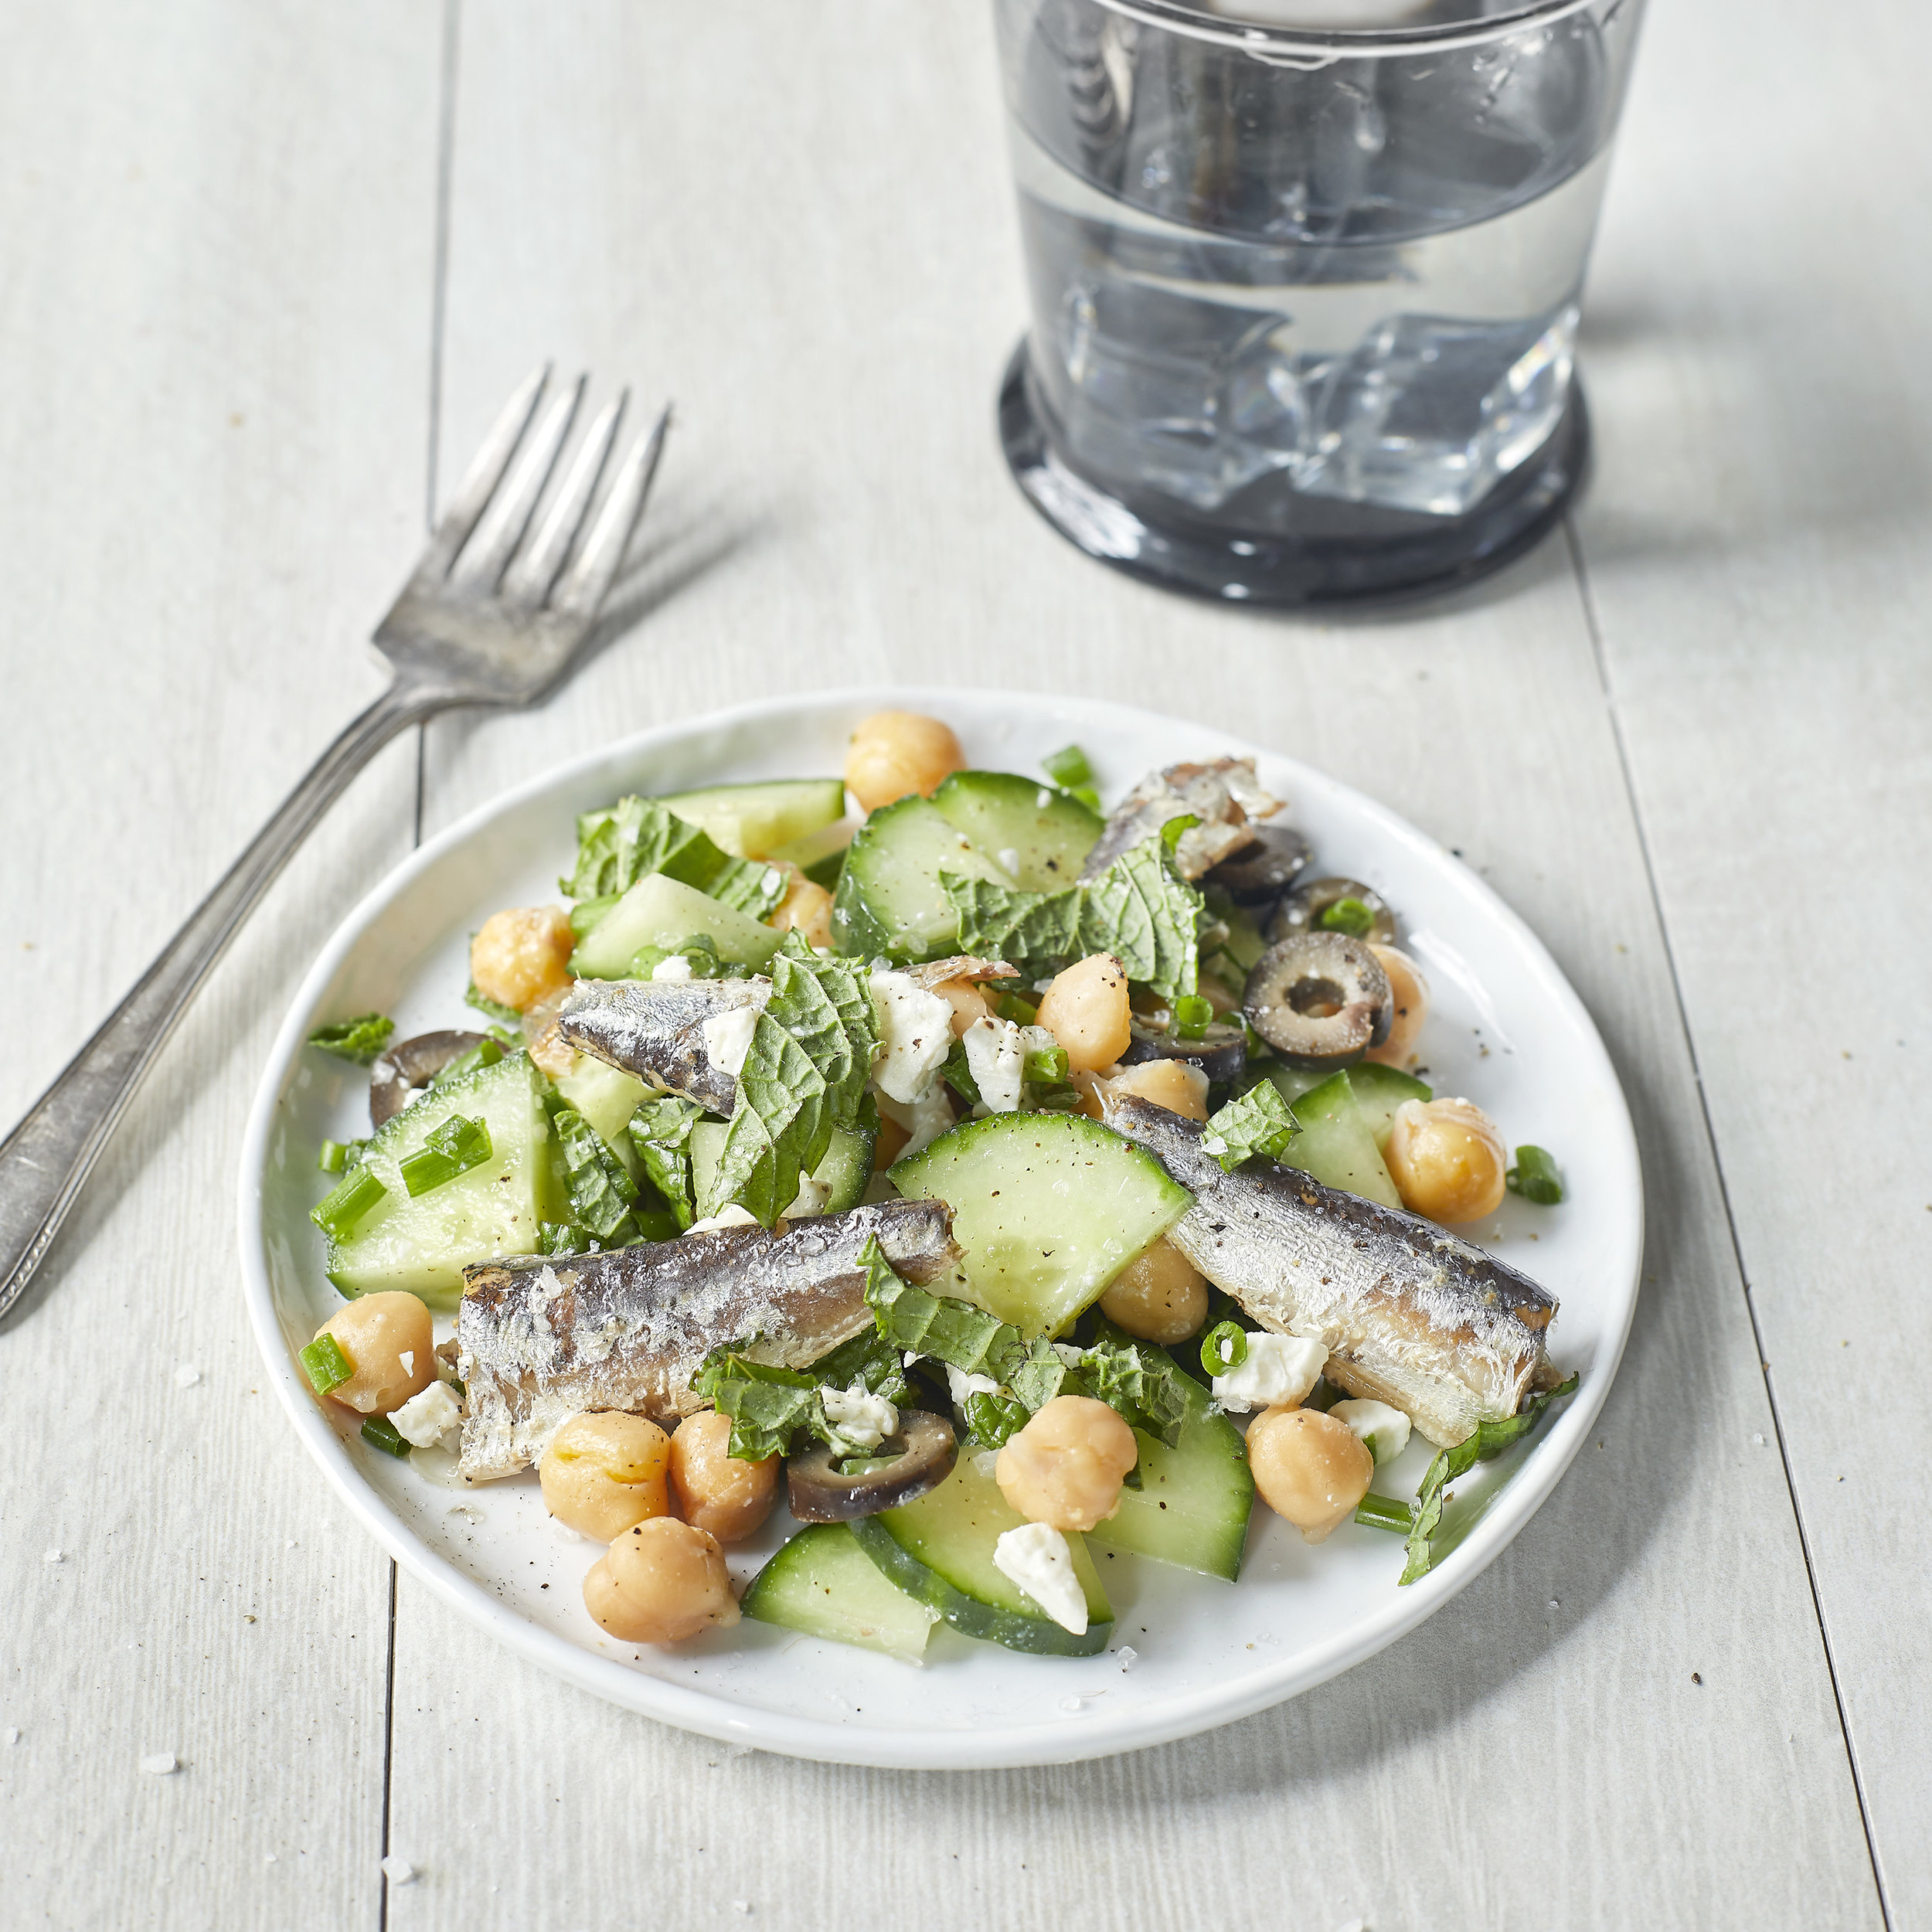 Sardine Salad with Chickpeas & Feta   - Ingredients:- 1 16oz Can Chickpeas, rinsed and drained - 2/3 Cups Cucumbers, seeded & diced - 2 Tins of Cole's Petite Sardines in olive oil - 1/2 Cup Crumbled Feta Cheese - 1/2 Cup Pitted & Sliced Black Olives - 1 Tbsp Chopped Mint Leaves - 1 Tbsp Chopped Chives - 1 Medium Lemon, zest & juiced- 1 Tbsp Olive Oil - Cracked Black PepperDirections:In a medium bowl, stir together chickpeas, cucumber, feta, olives, lemon zest and juice, mint, and the olive oil. Arrange 2-3 fillets on each salad and sprinkle with a pinch of chopped chives and a few cracks of black pepper.